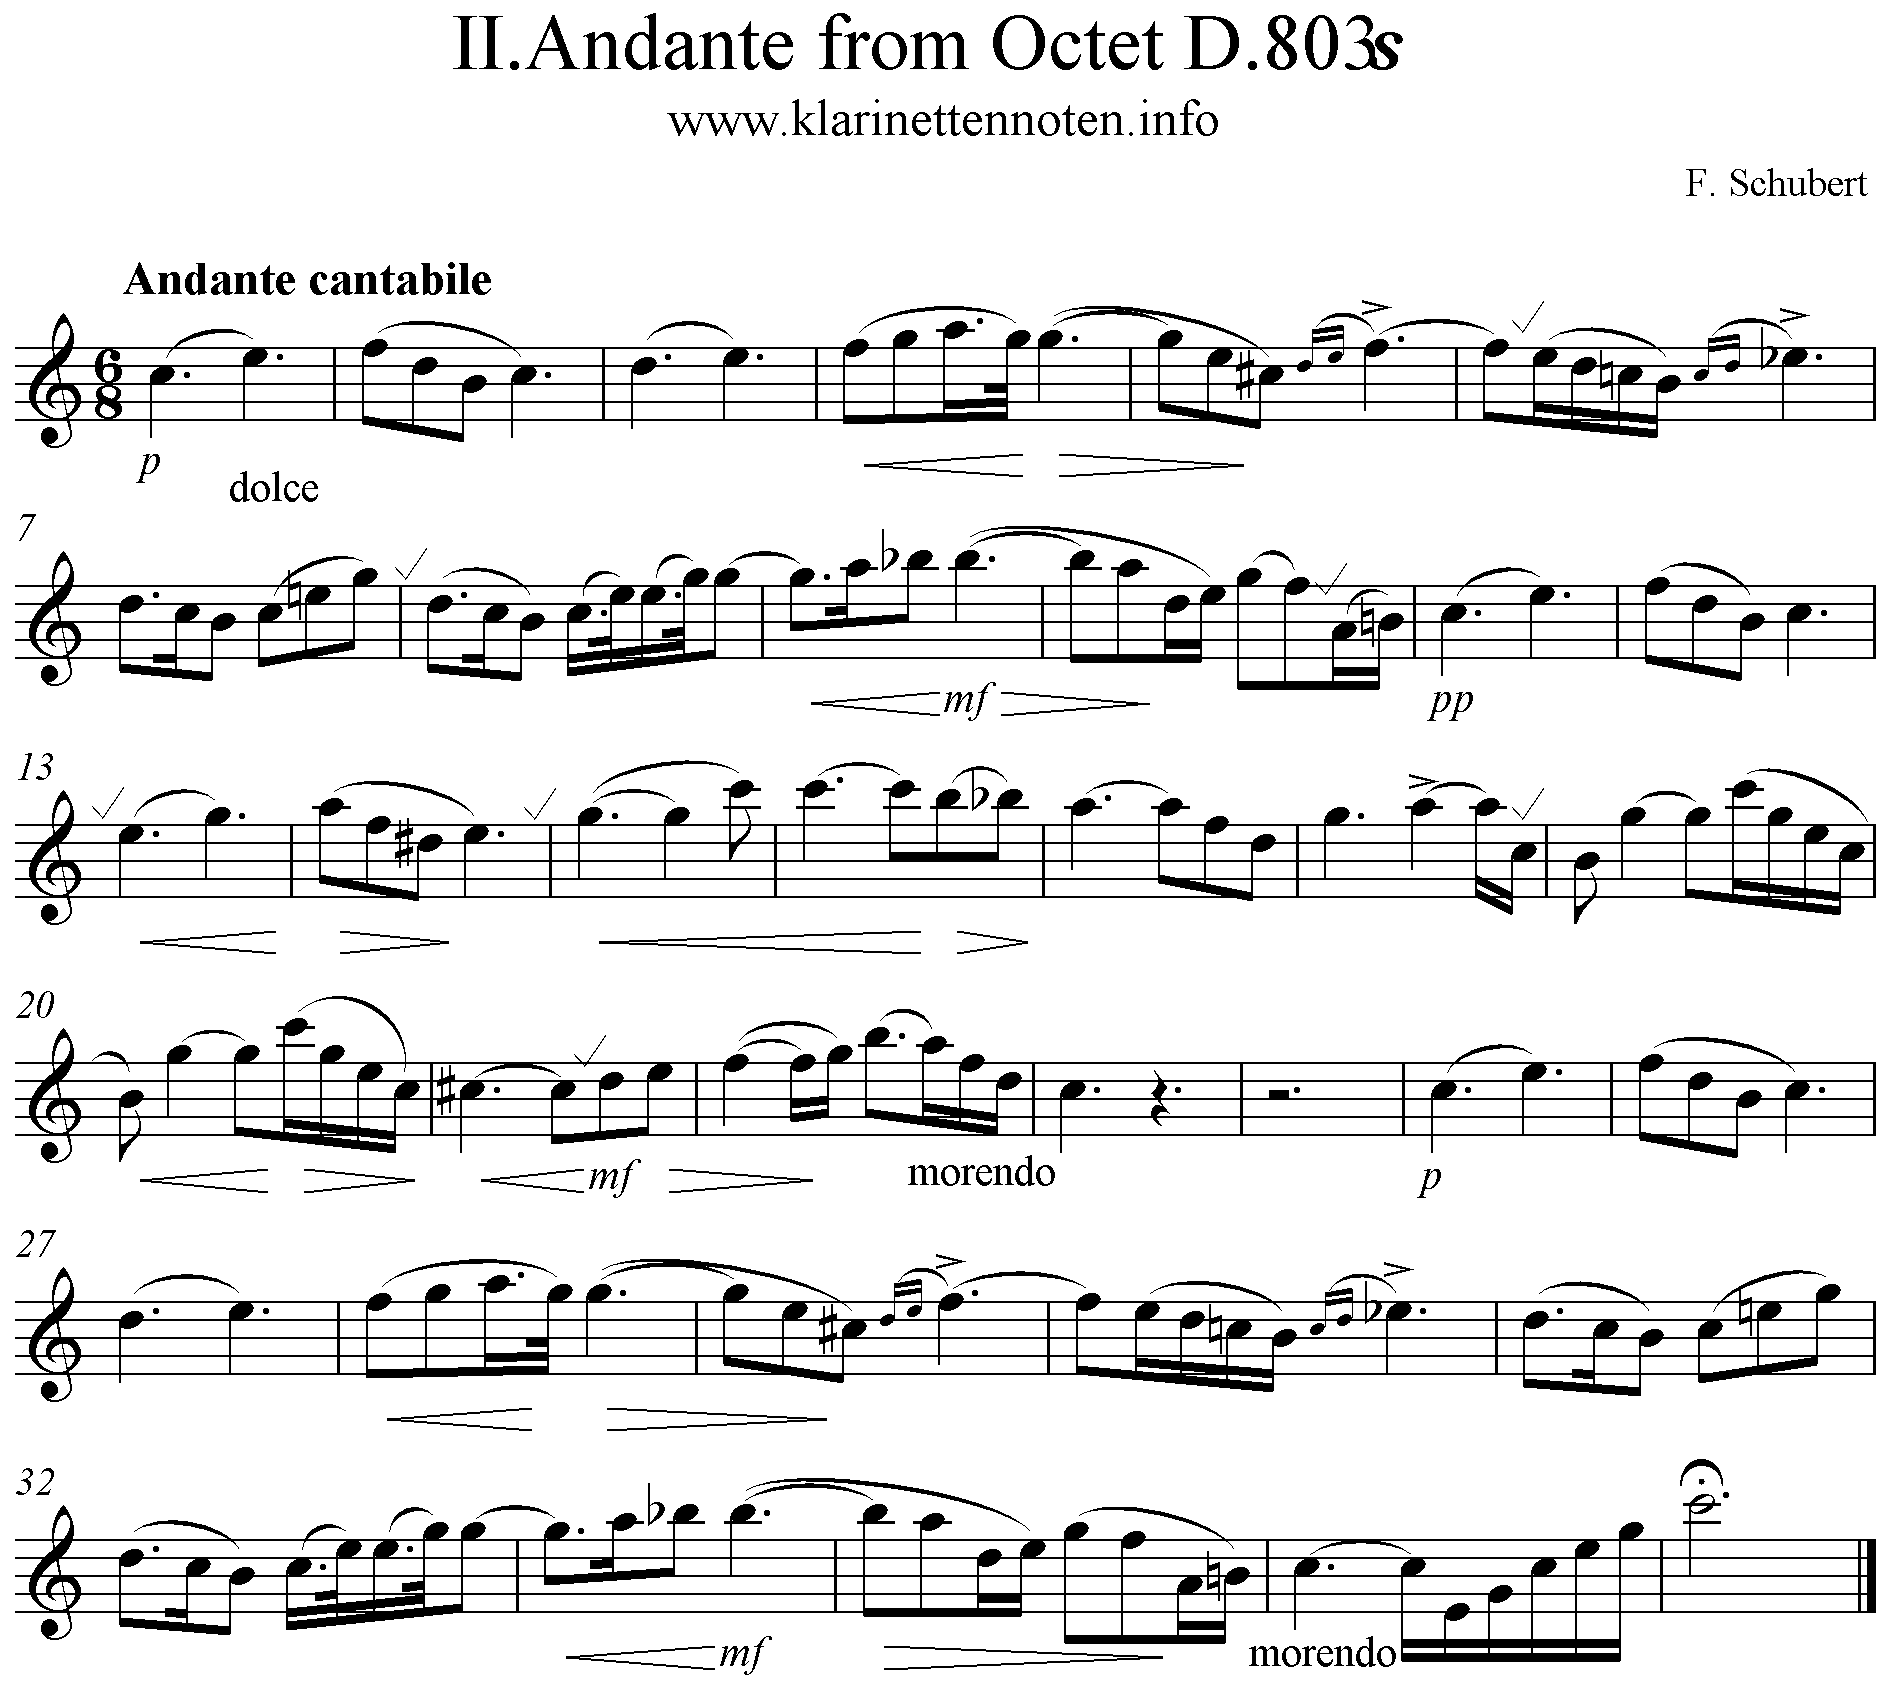 Preghiera, Andante from Octet Schubert  D803